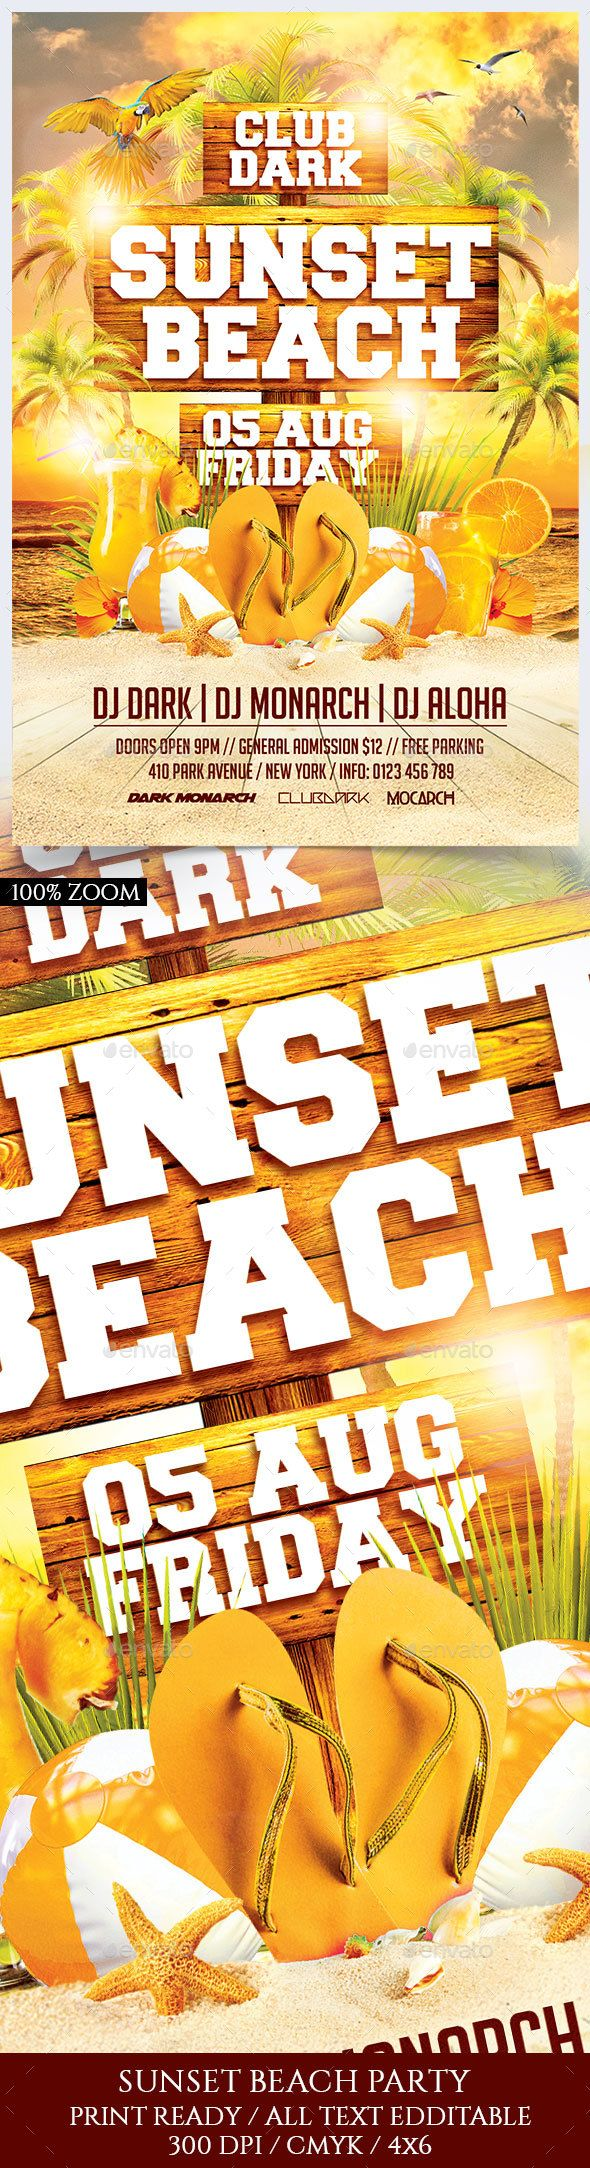 Sunset Beach Party  Sunset Beach Party Flyer And Flyer Template